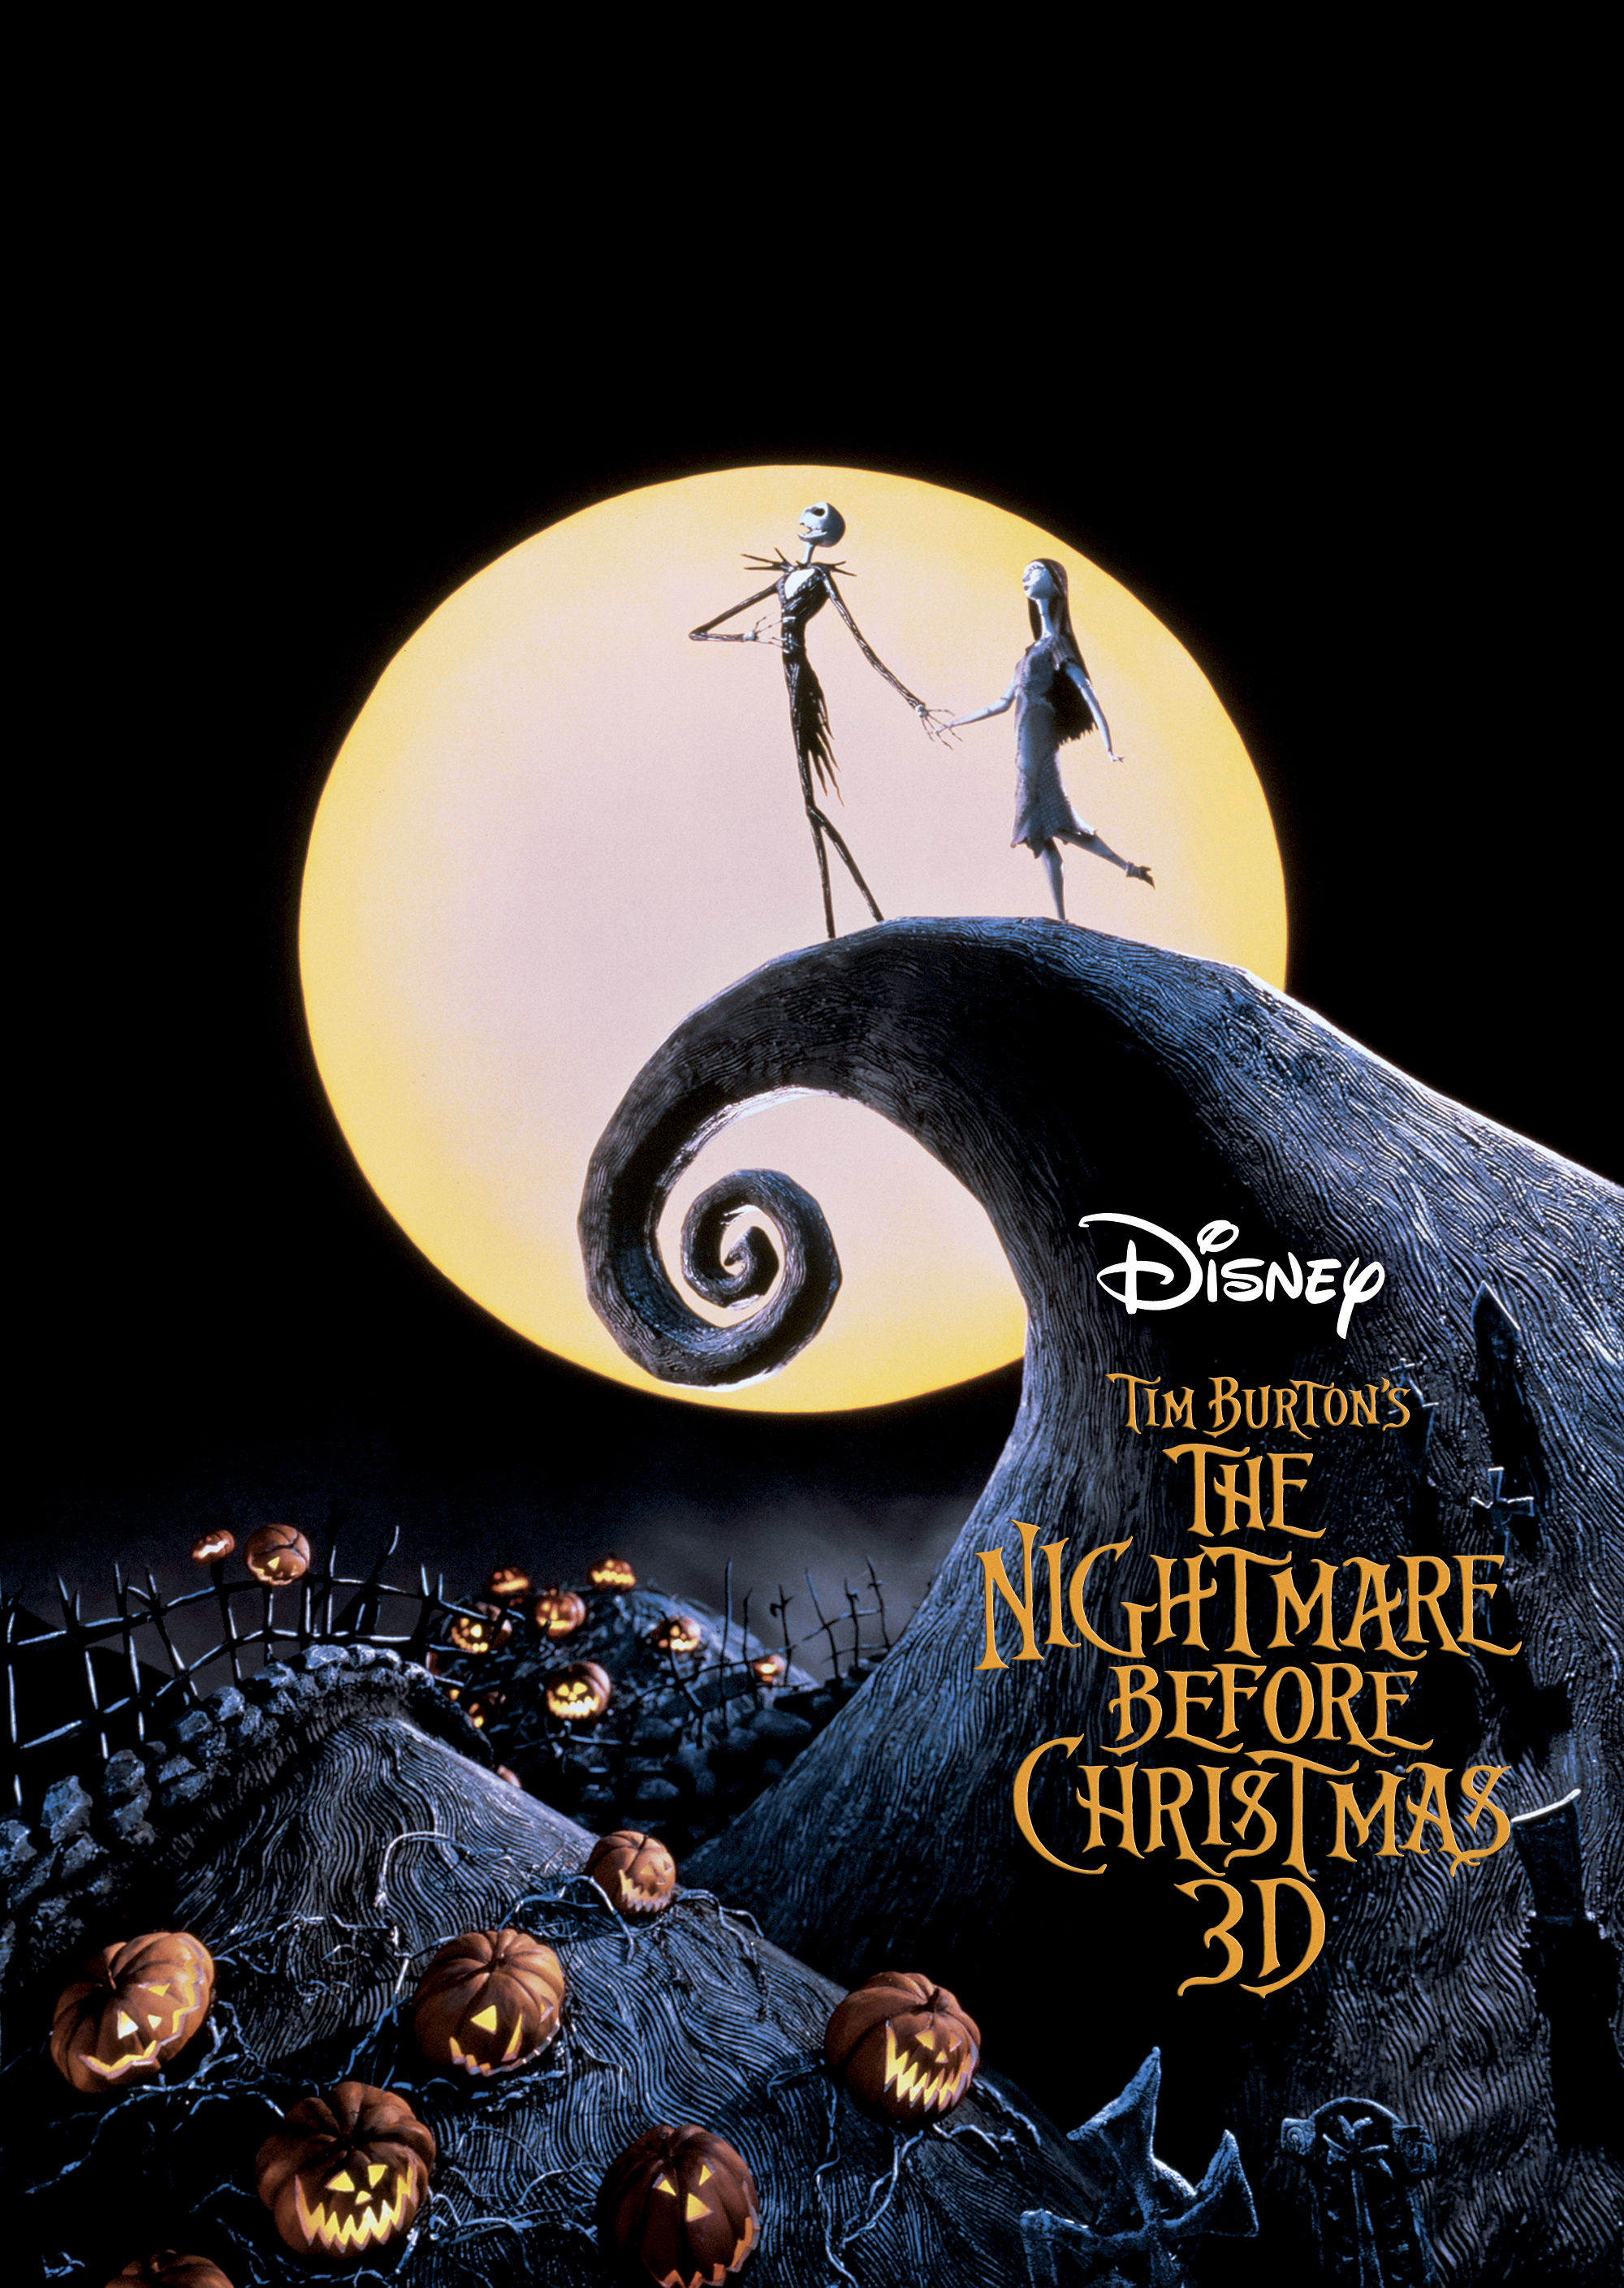 Nightmare Before Christmas Hd Wallpaper.Most Viewed The Nightmare Before Christmas Wallpapers 4k